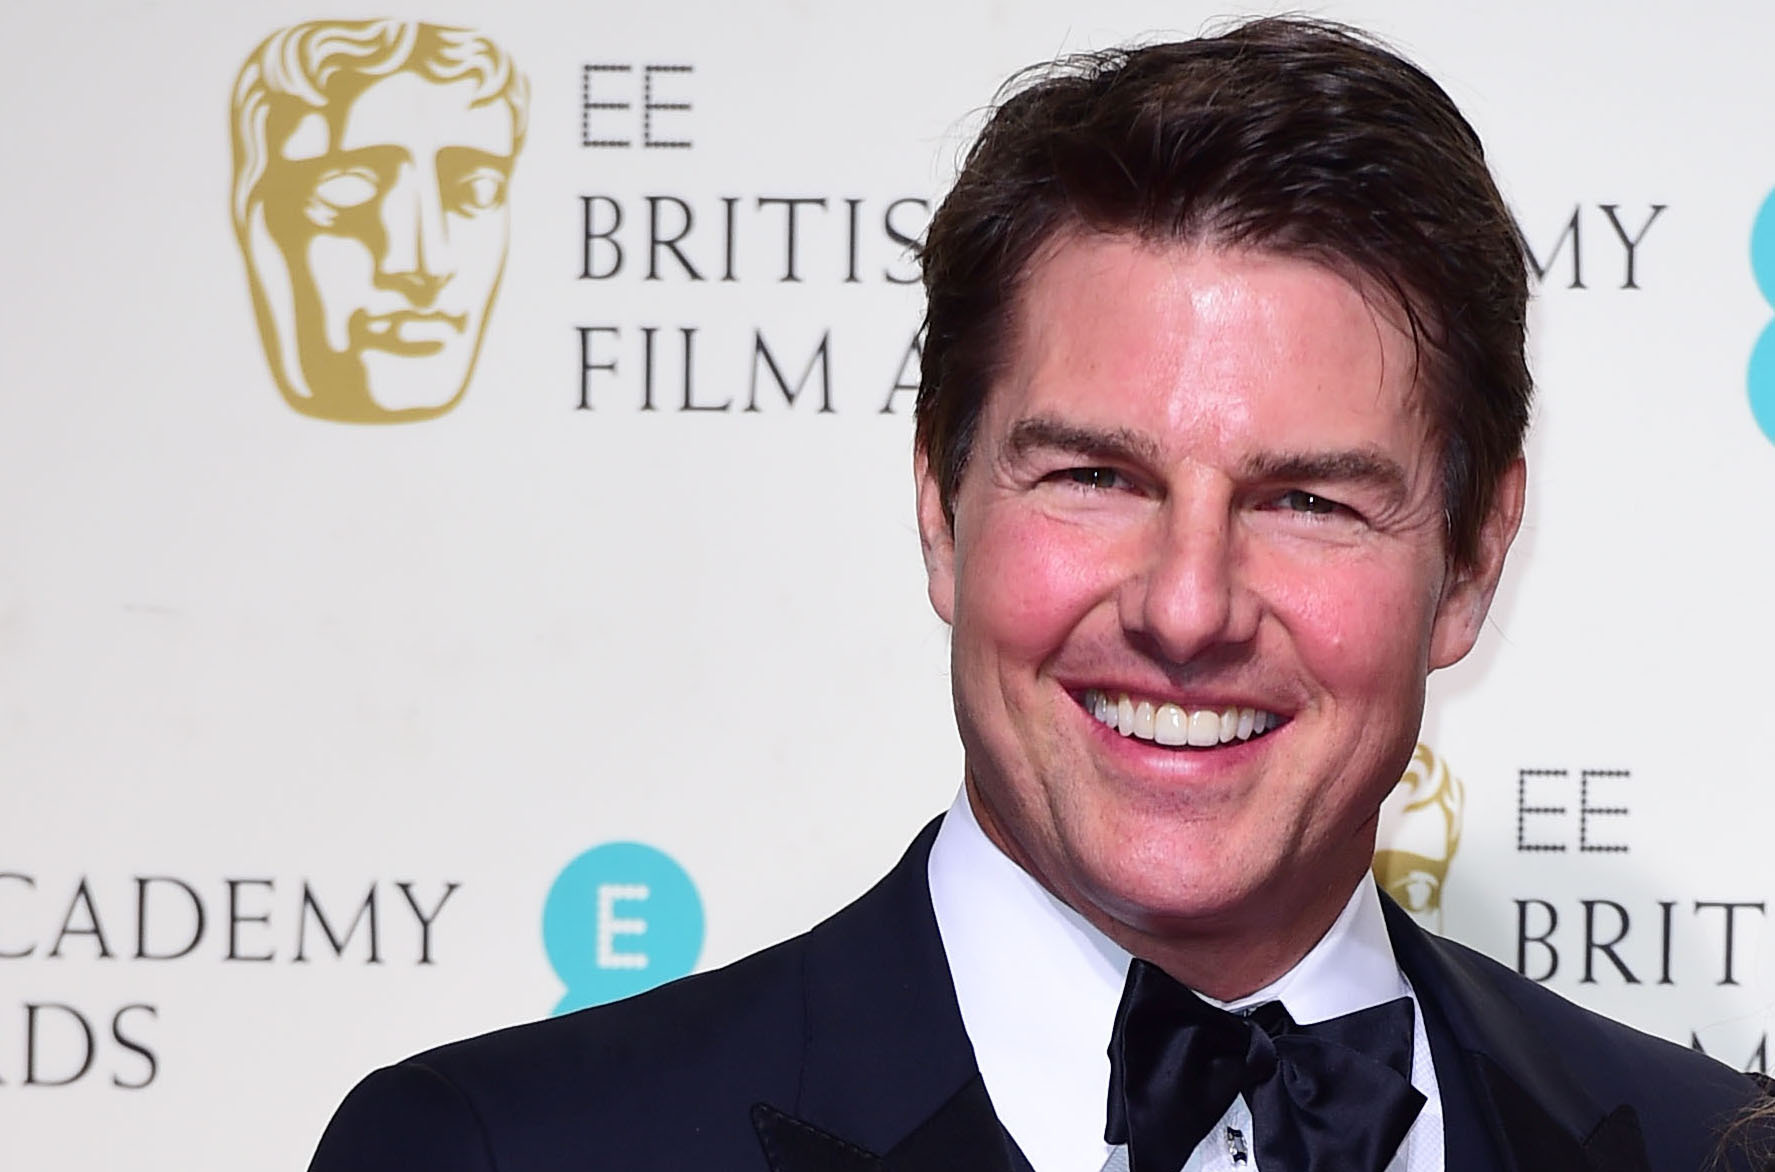 Tom Cruise Broke His Ankle ... In 'M:I6' Stunt Gone Wrong